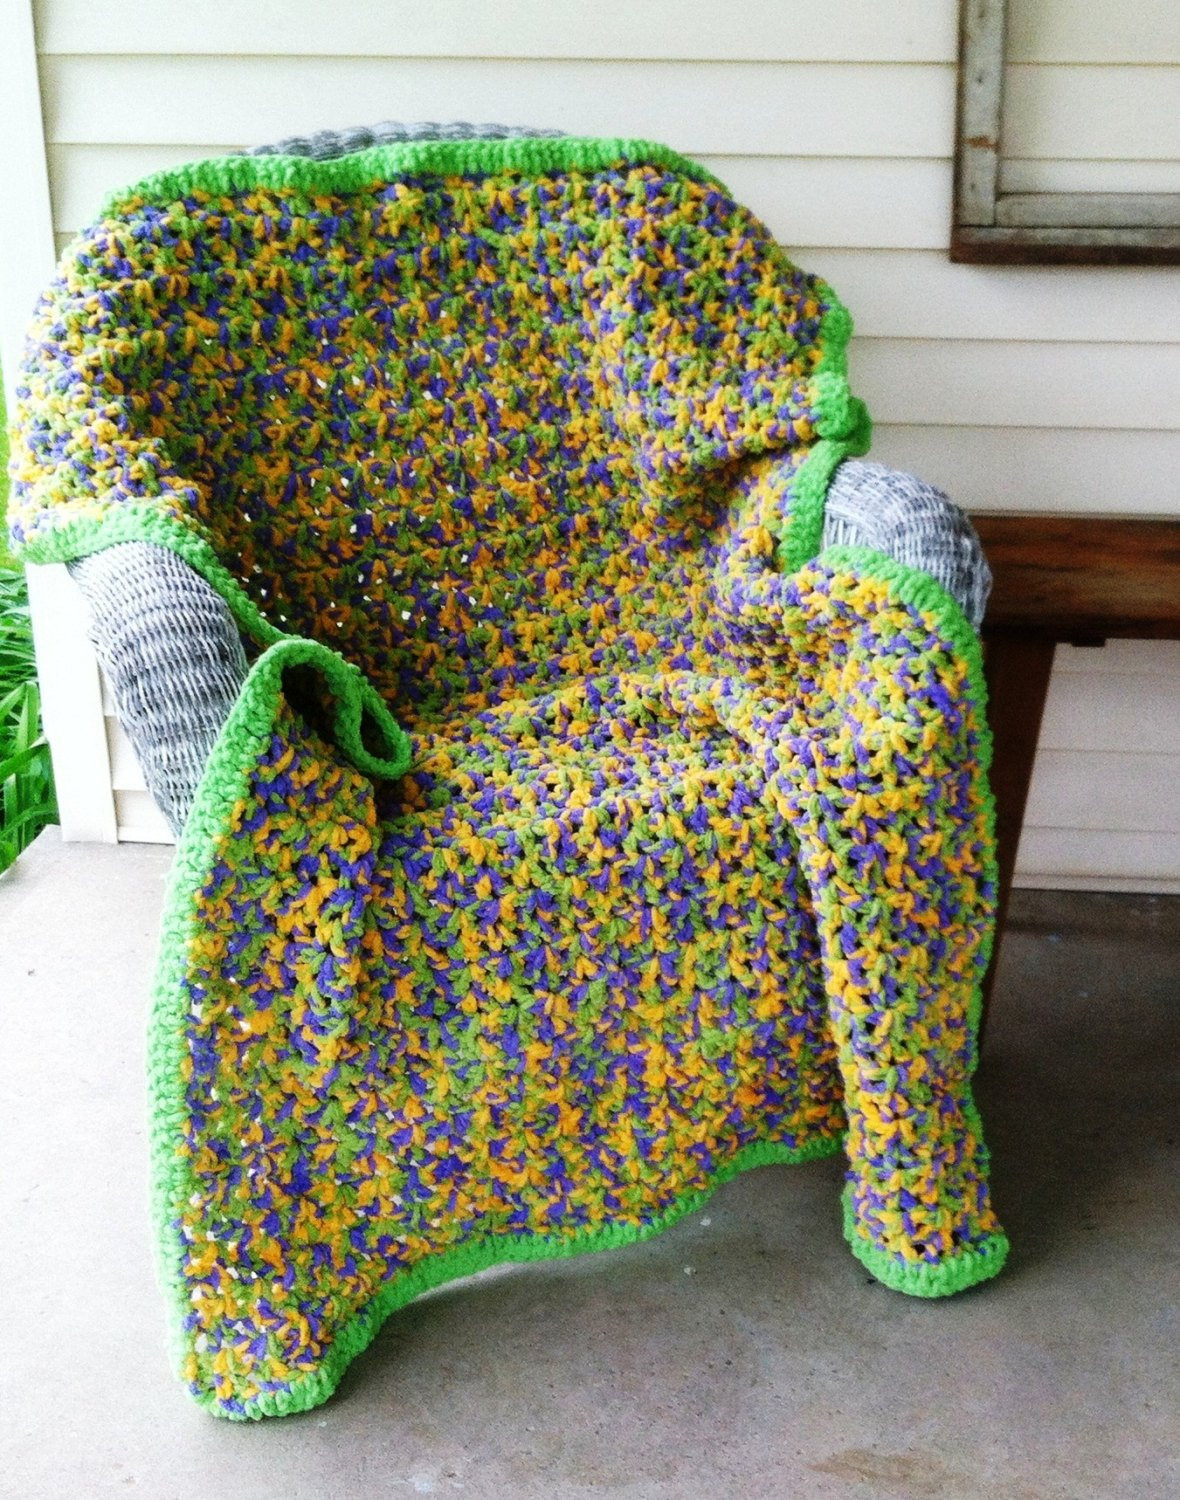 Easy Crochet Blanket Patterns Awesome Crochet Pattern for A Quick & Easy Crochet Afghan Using Bernat Of Amazing 50 Ideas Easy Crochet Blanket Patterns